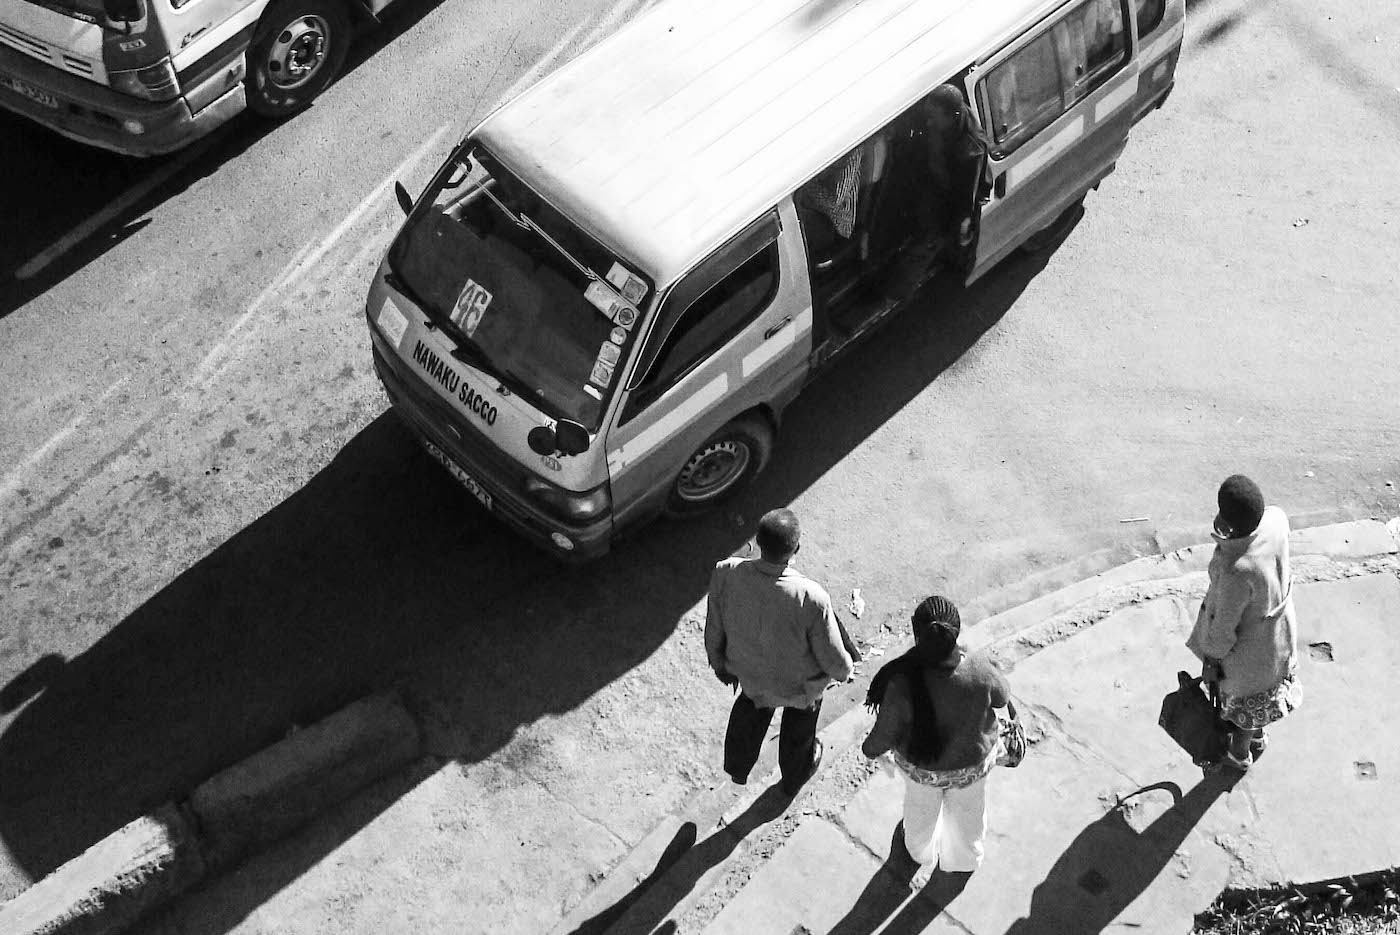 Men waiting for mini bus, photo by Mwangi Kirubi